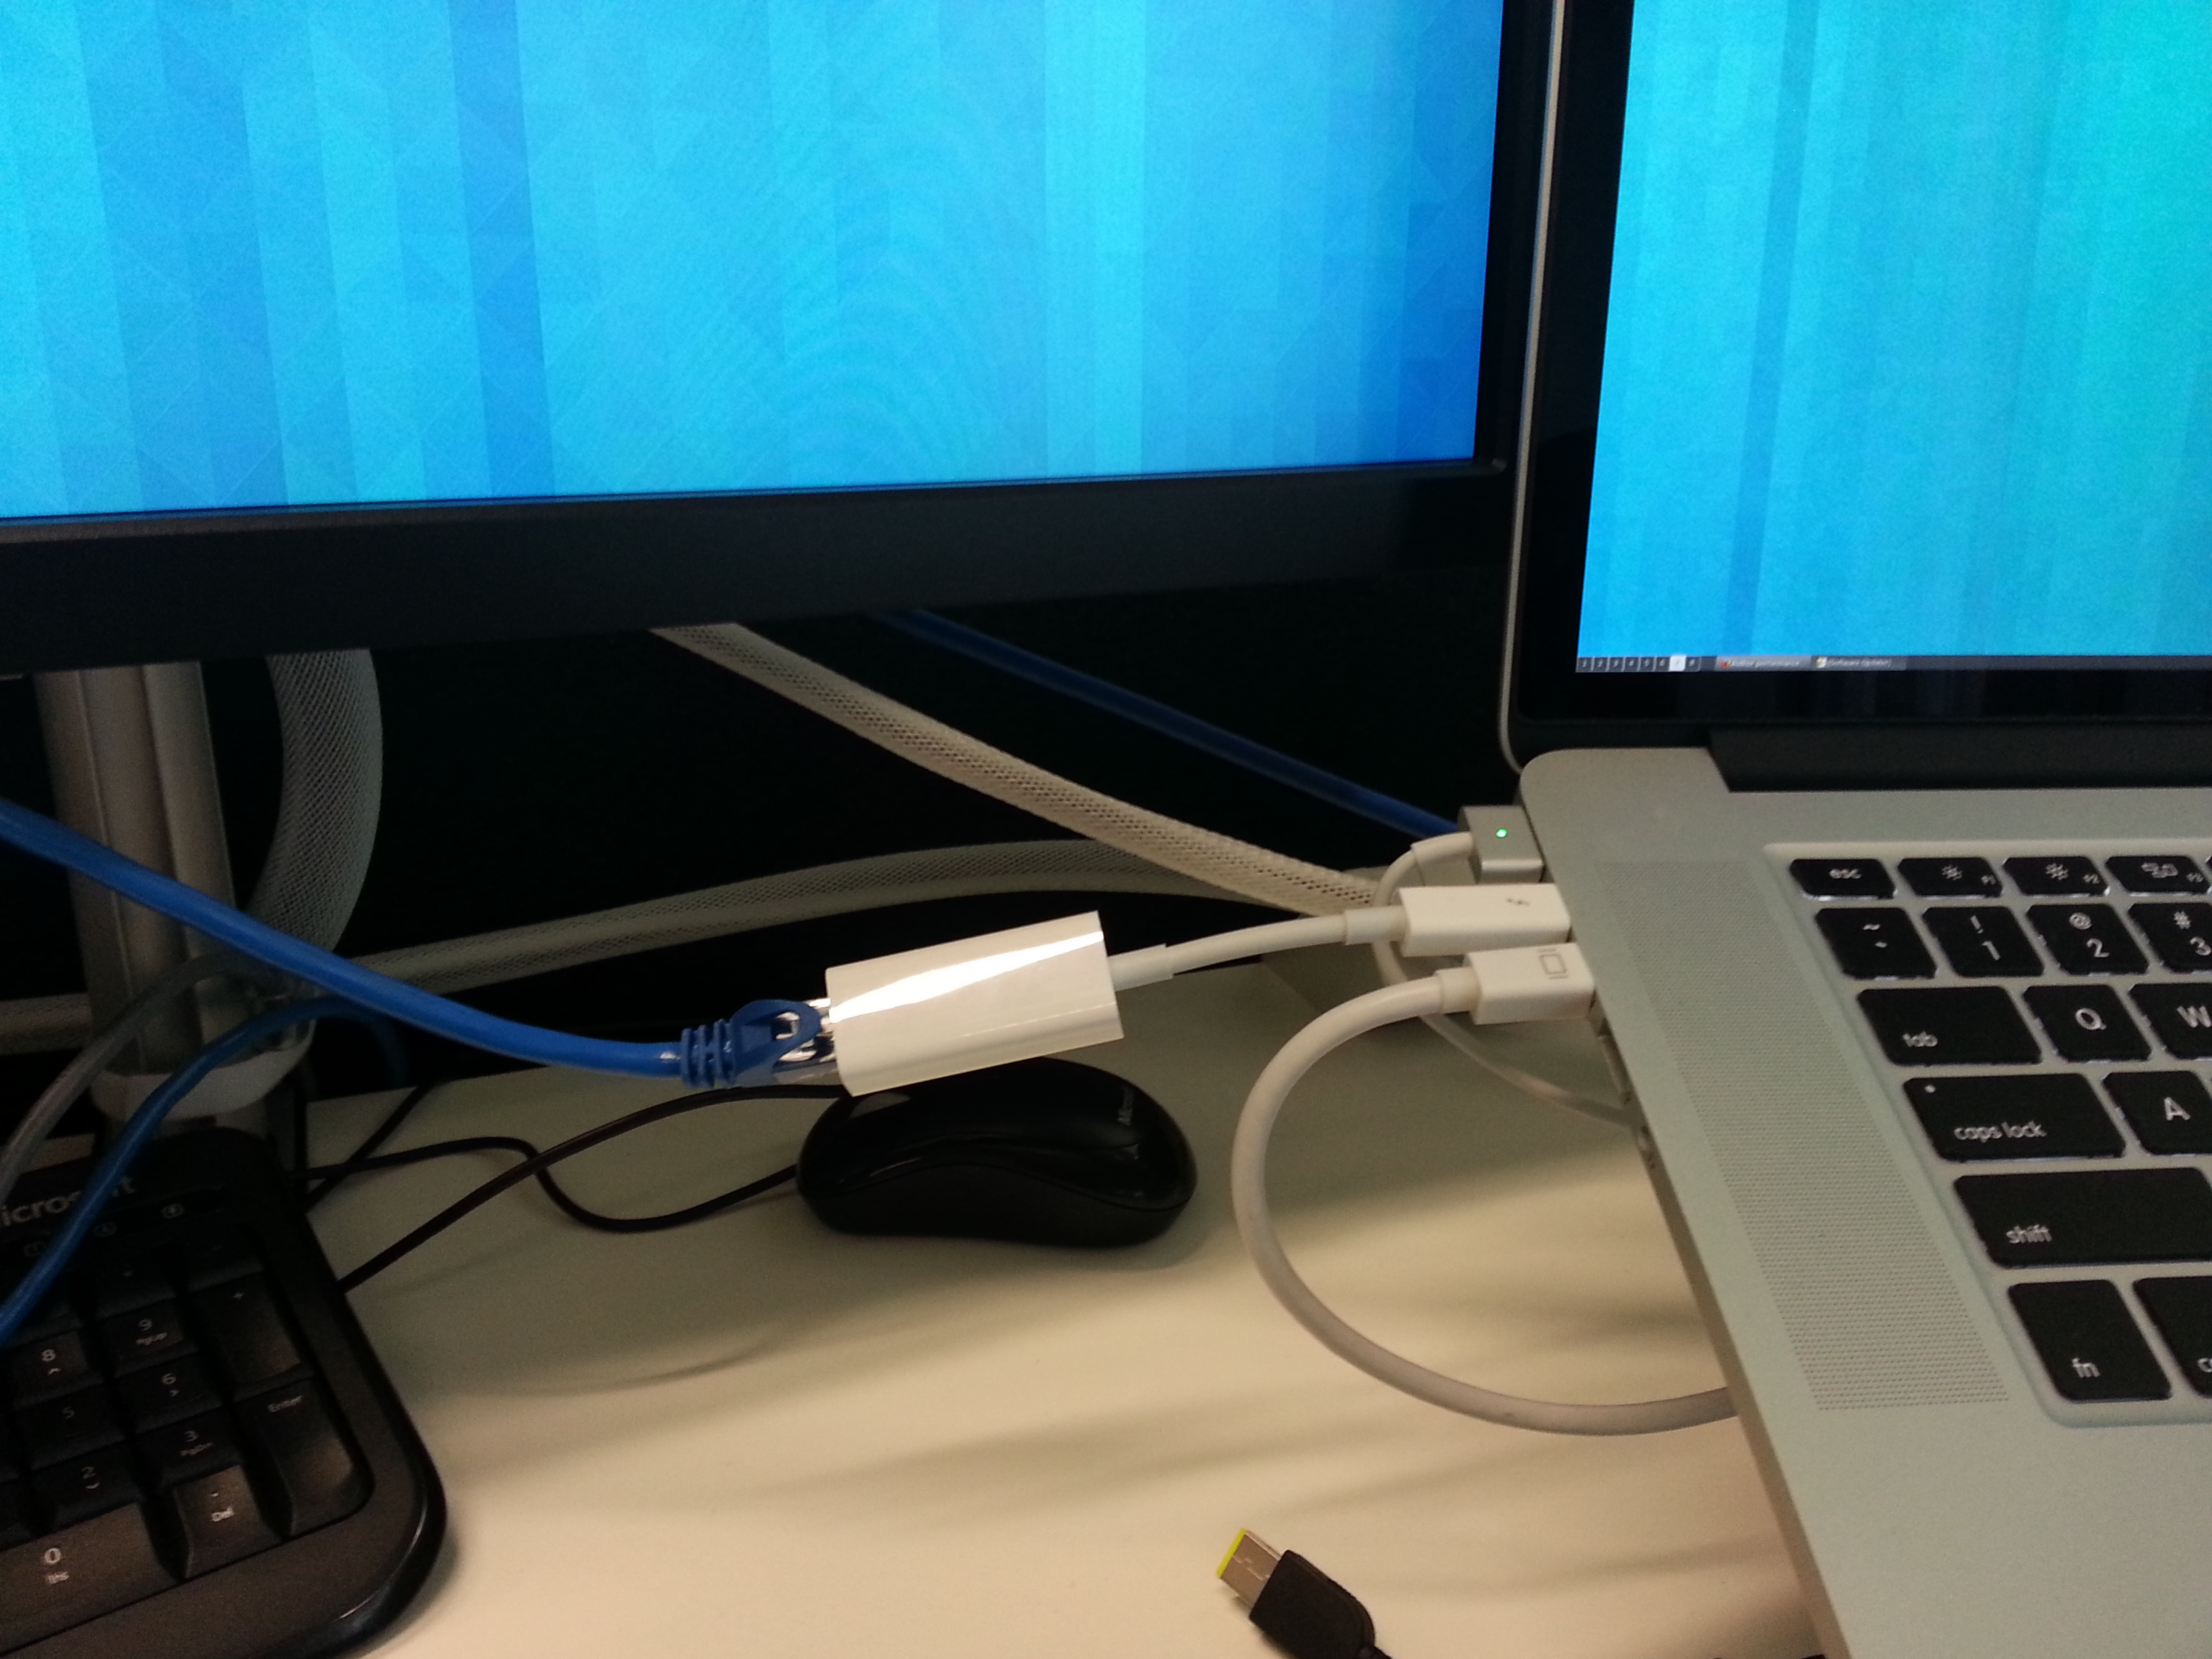 Thunderbolt and other Macbook hardware issues with Linux